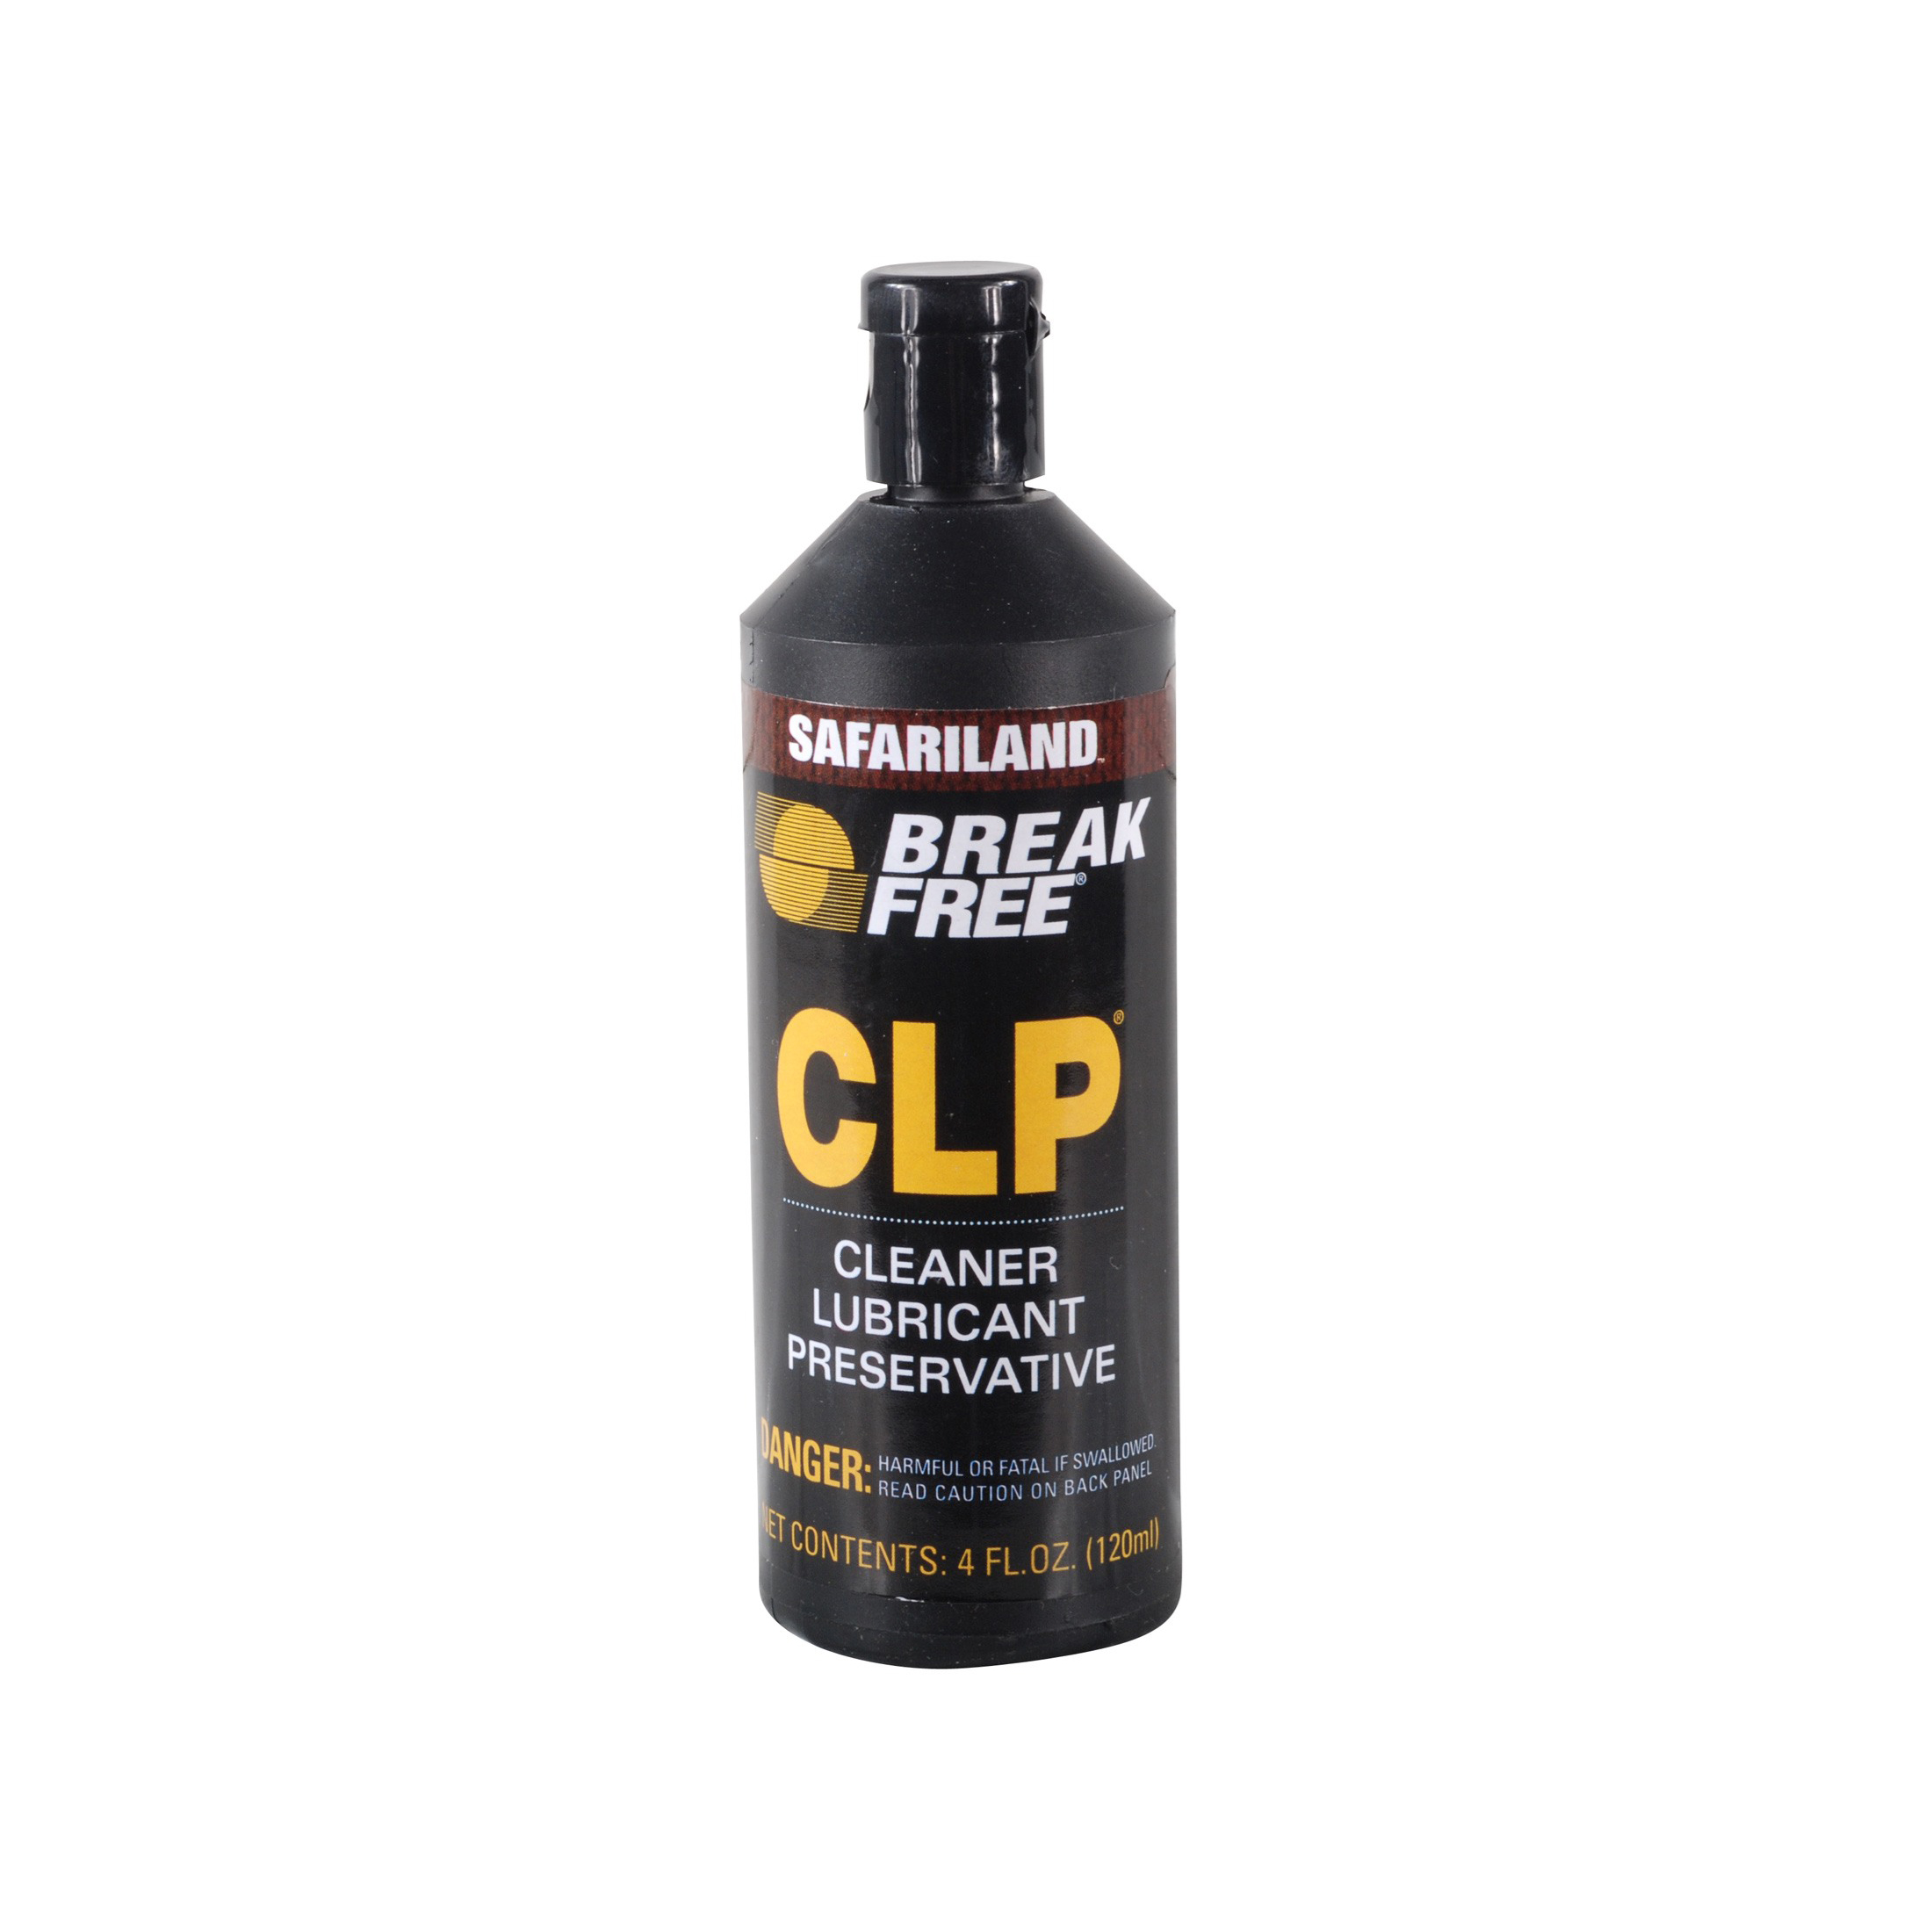 Break-free Clp Bore Cleaning Solvent 4 Oz Liquid